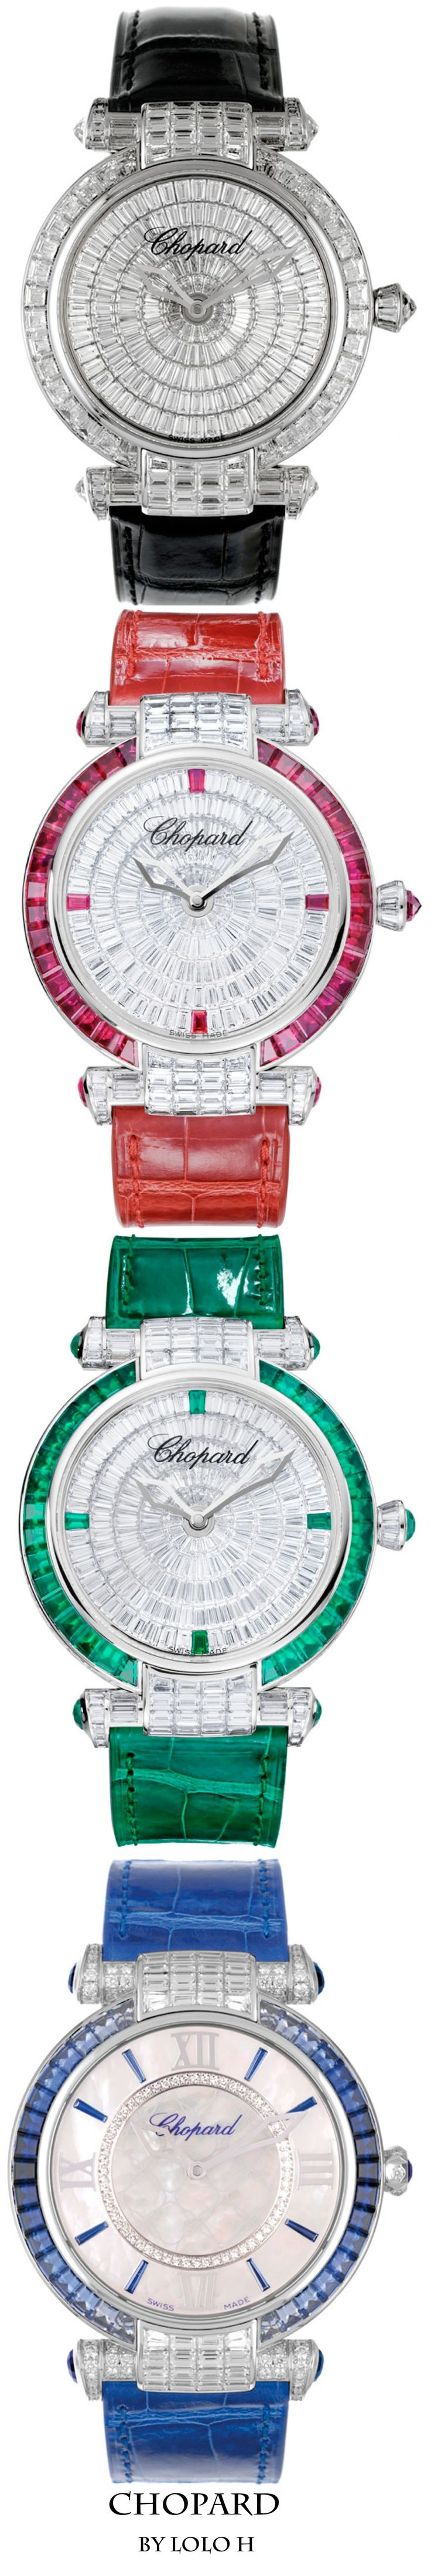 Chopard Watches | The House of Beccaria#